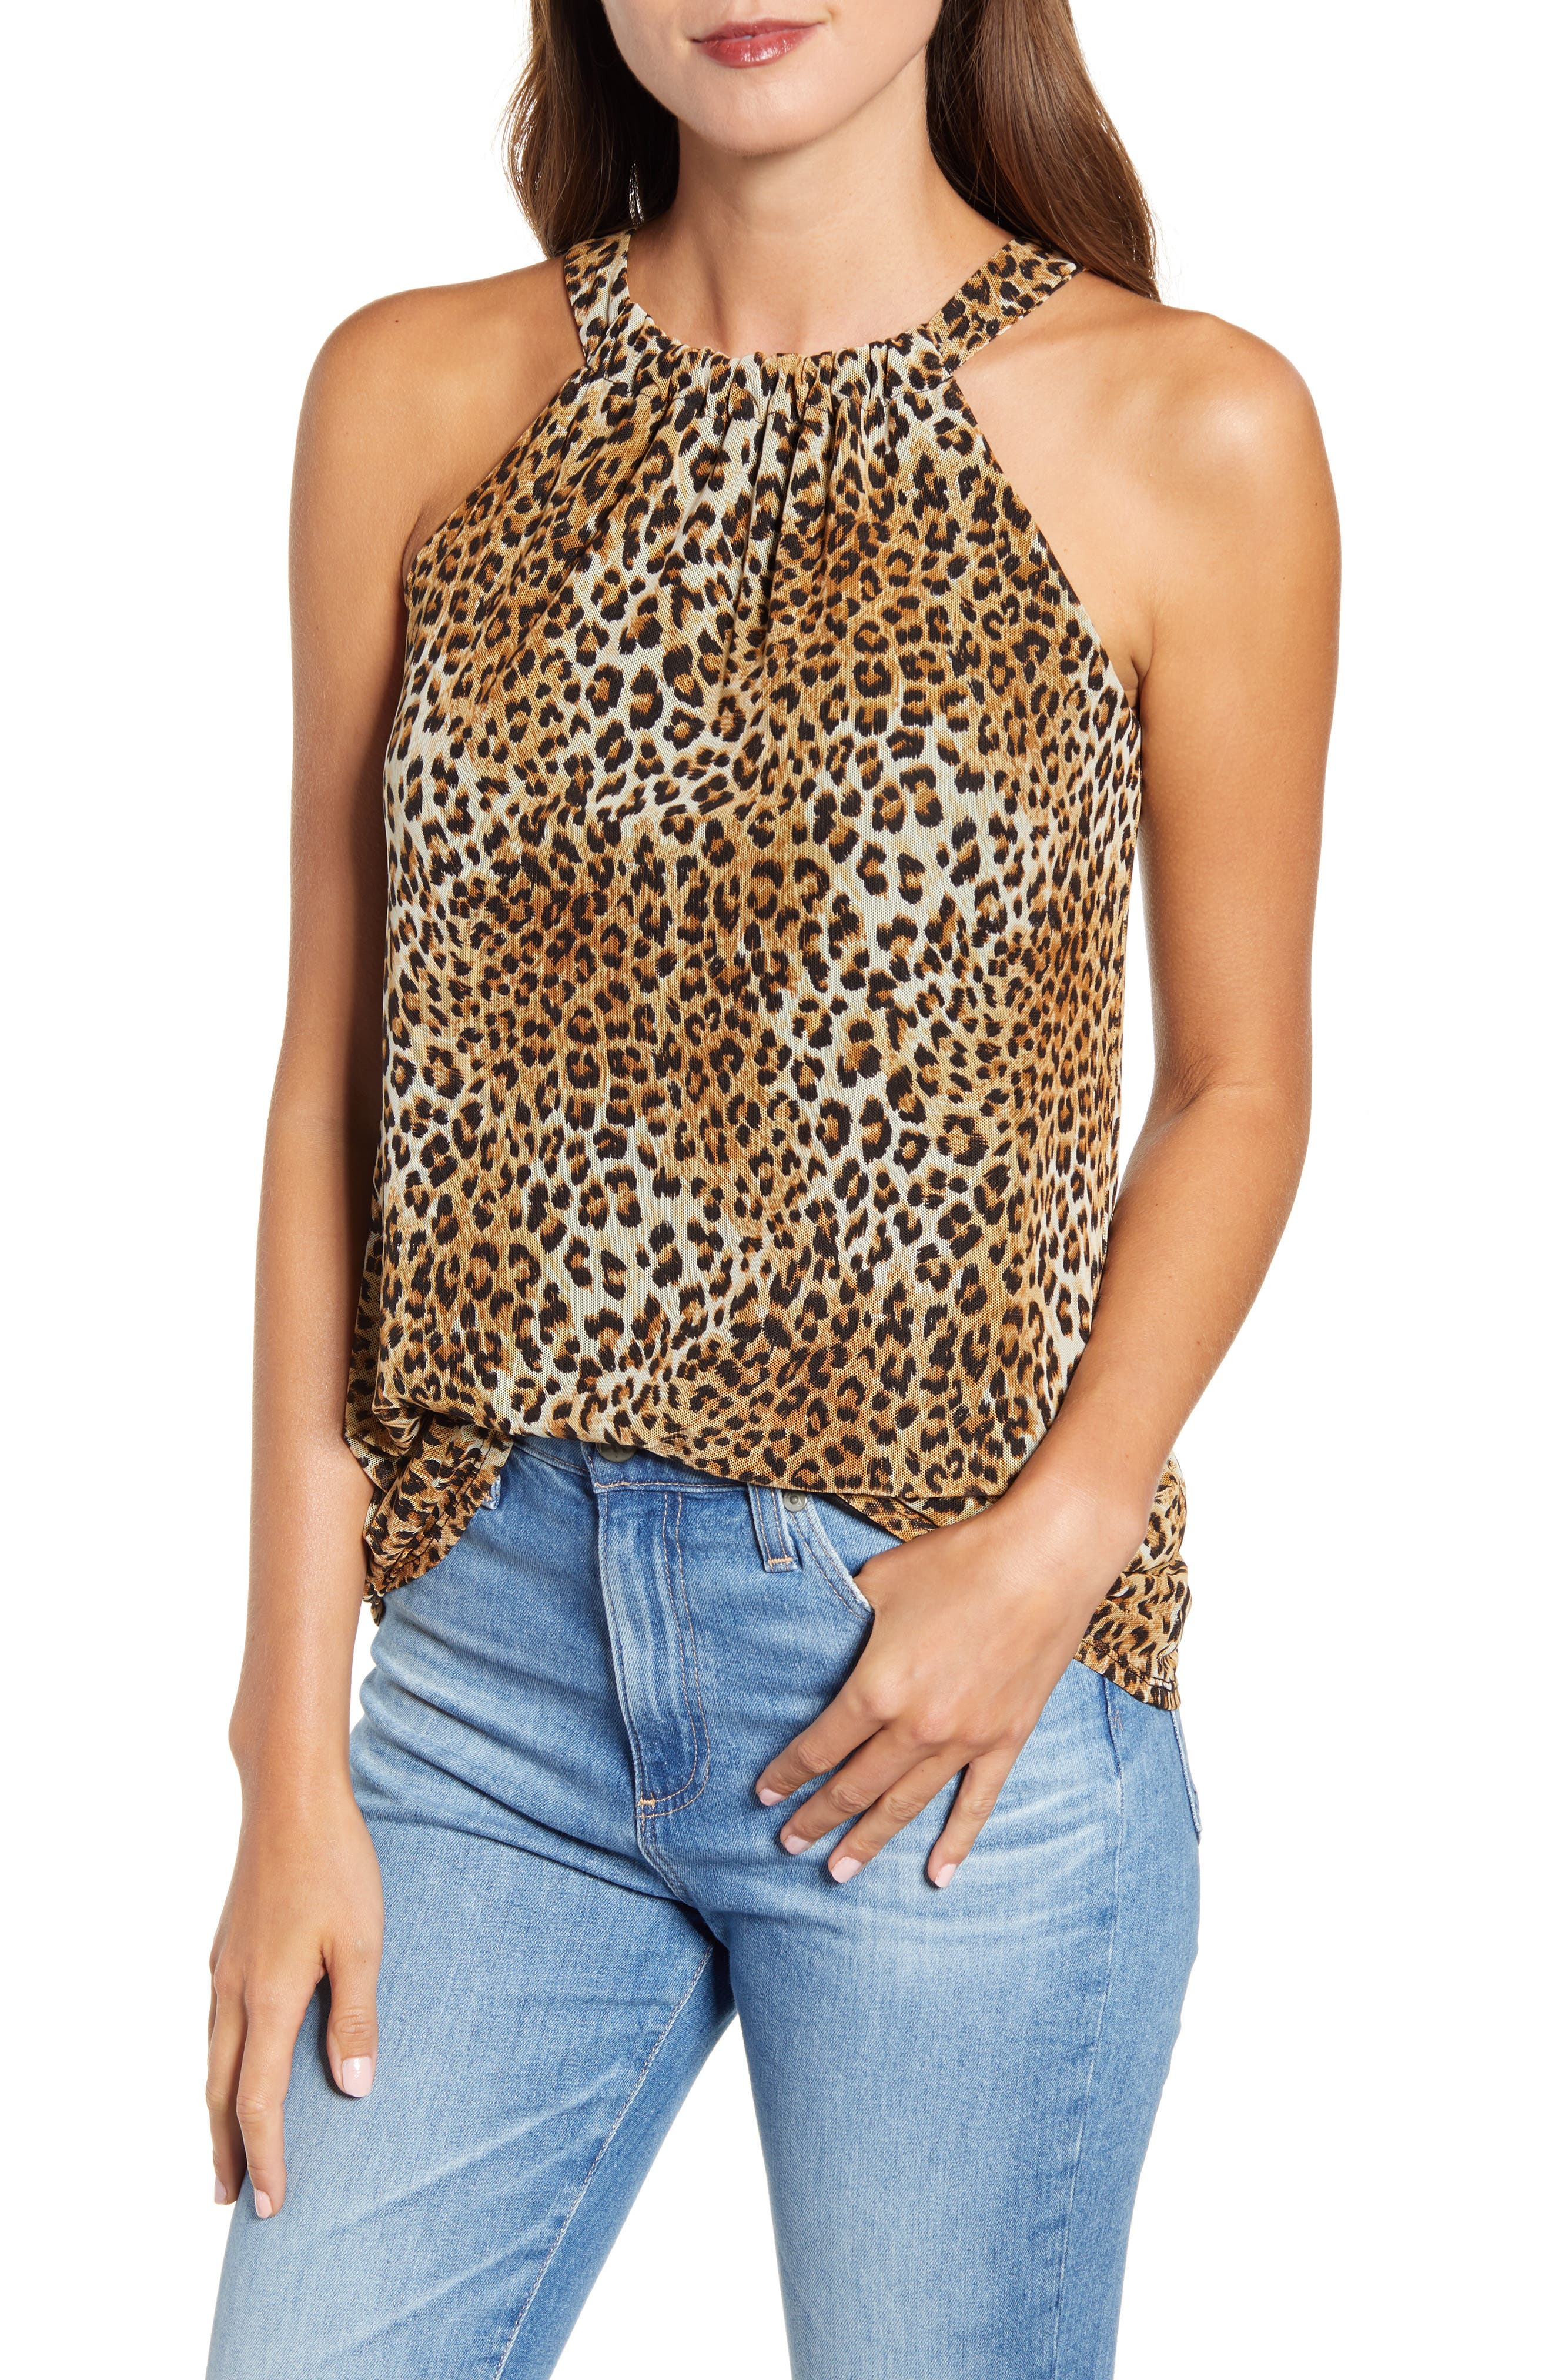 Enliven any look with the slinky leopard spots of this stretch-mesh tank gathered to a halter-style neckline that cuts away to show glowing shoulders. Style Name: Loveappella Leopard Print Mesh Tank. Style Number: 5921392. Available in stores.